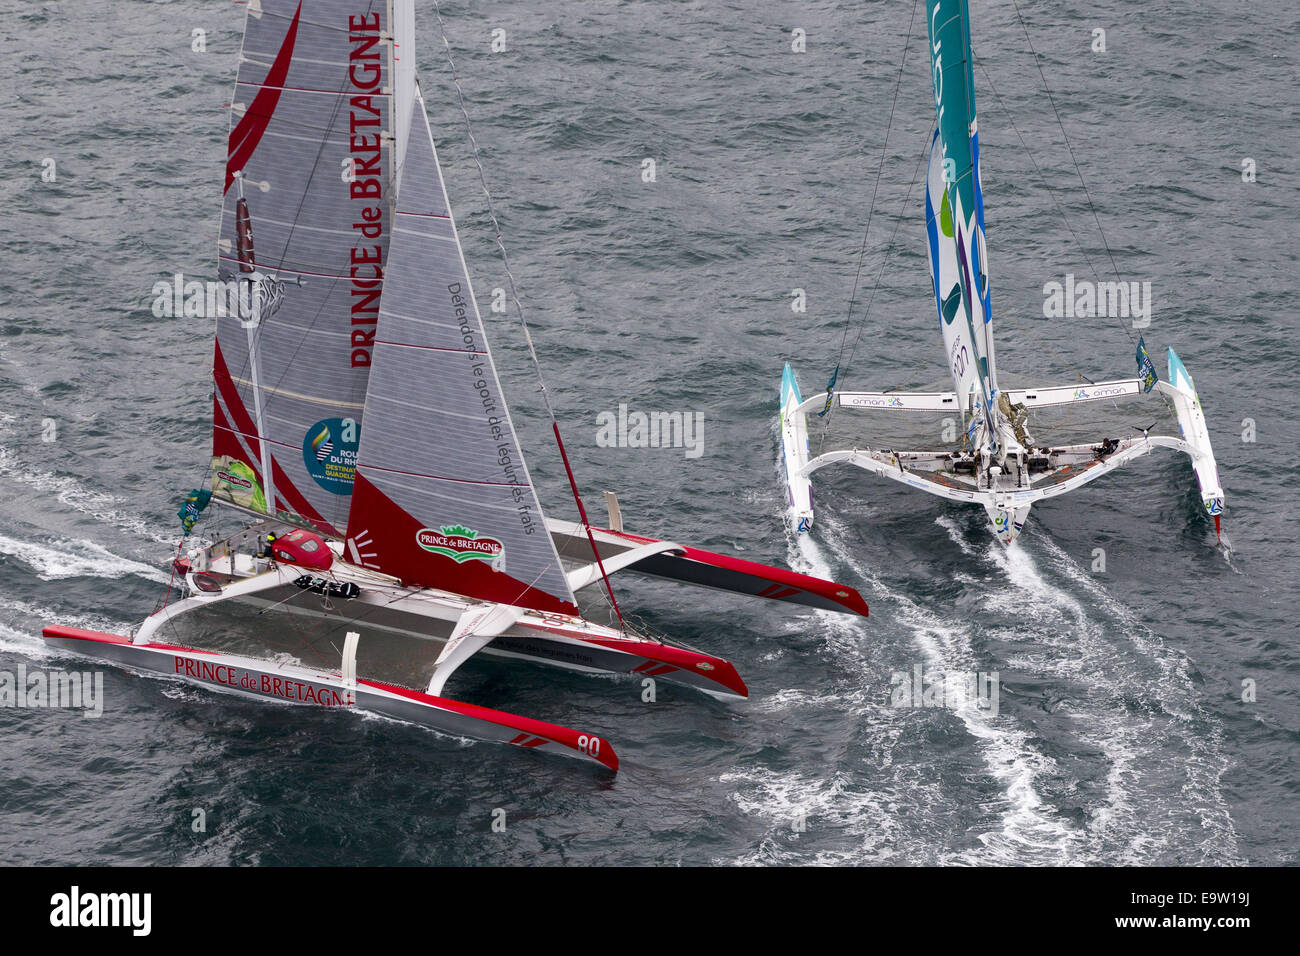 St Malo, France. 02nd Nov, 2014. Route du Rhum Transatlatic solo yacht race. The boats depart from St Malo on their - Stock Image